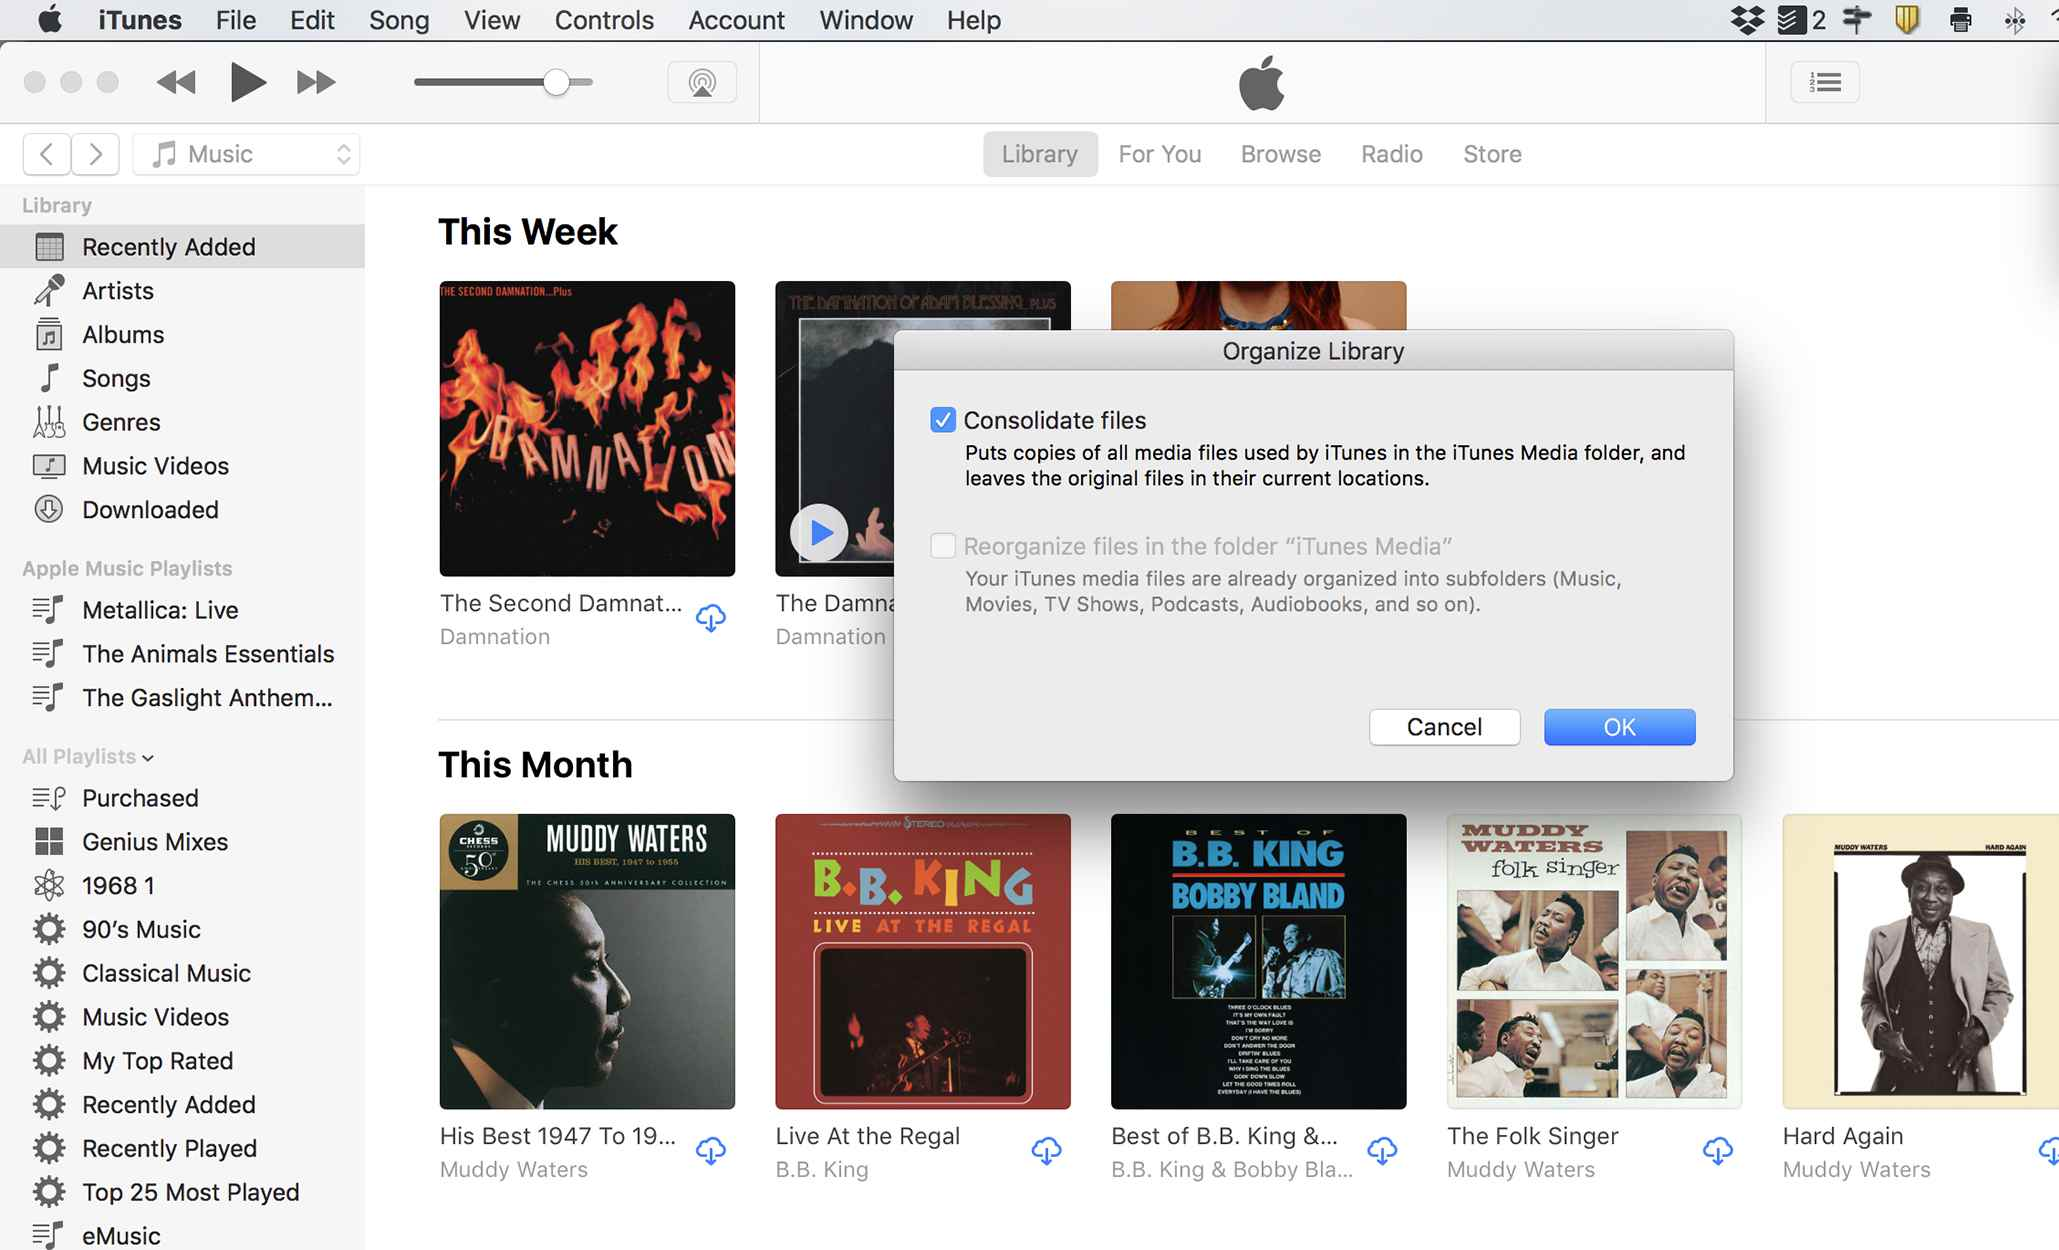 How do I consolidate music from 2 iTunes Accts into 1 Acct